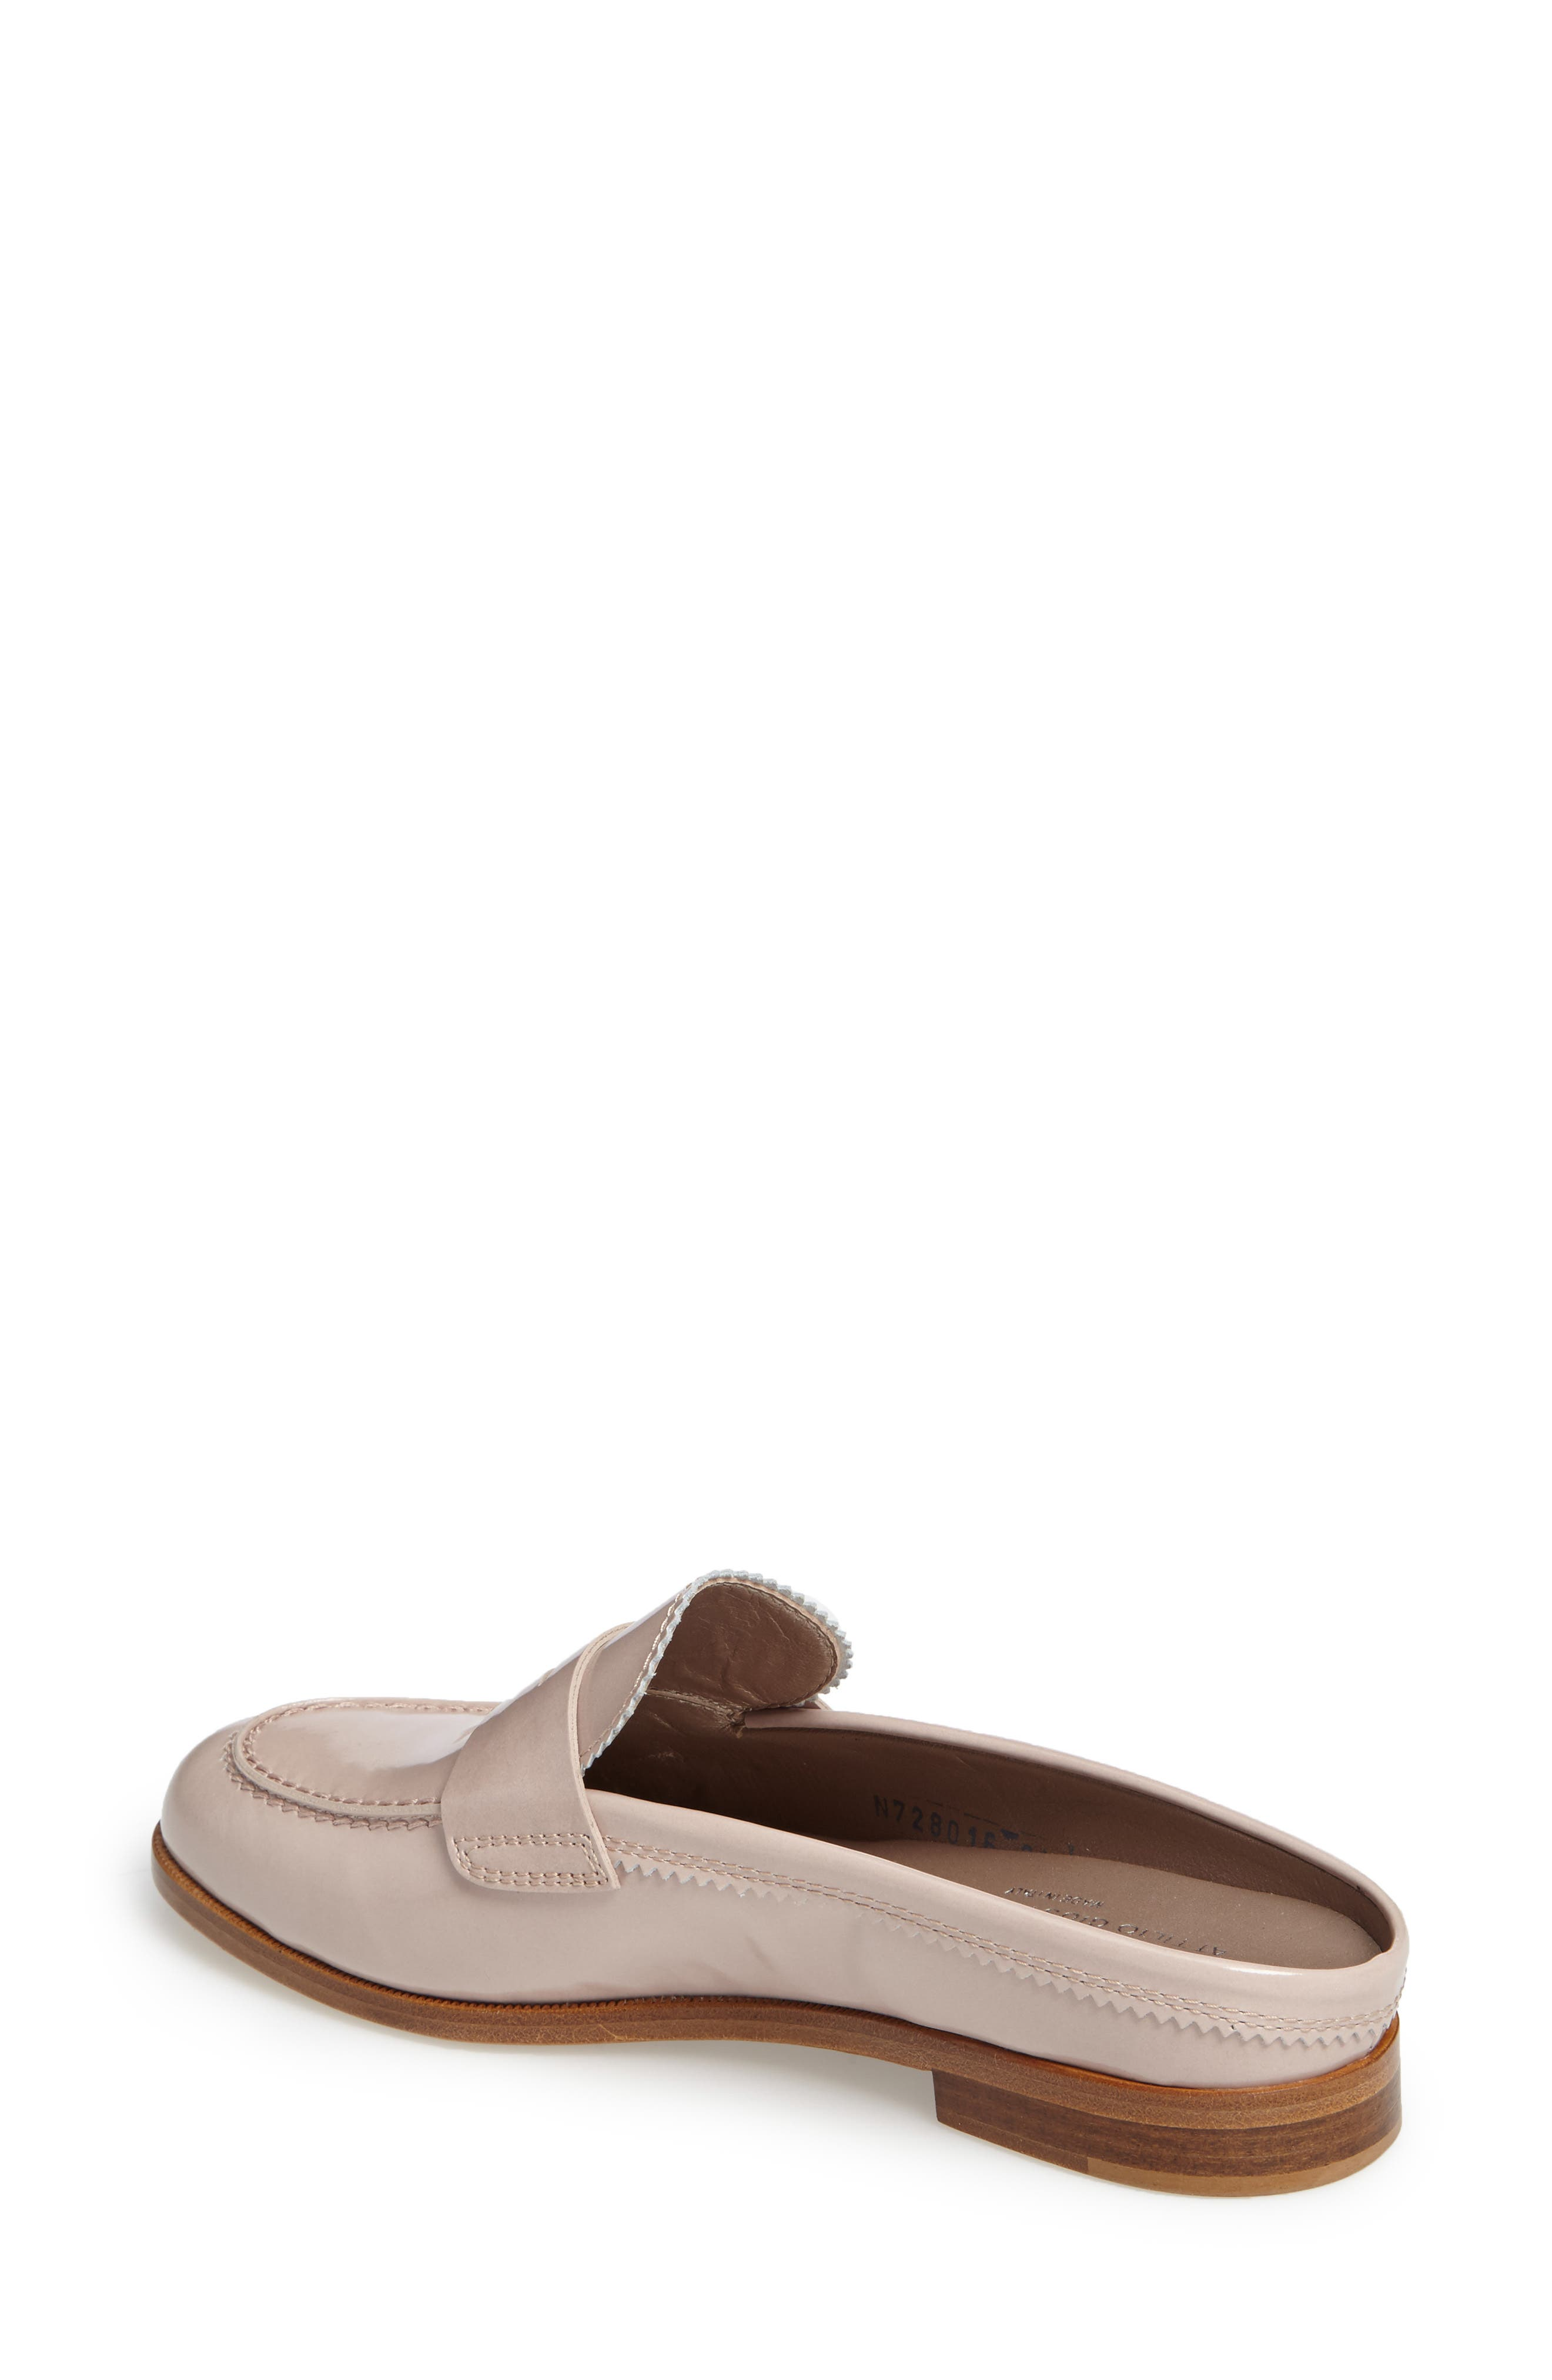 Penny Loafer Mule,                             Alternate thumbnail 8, color,